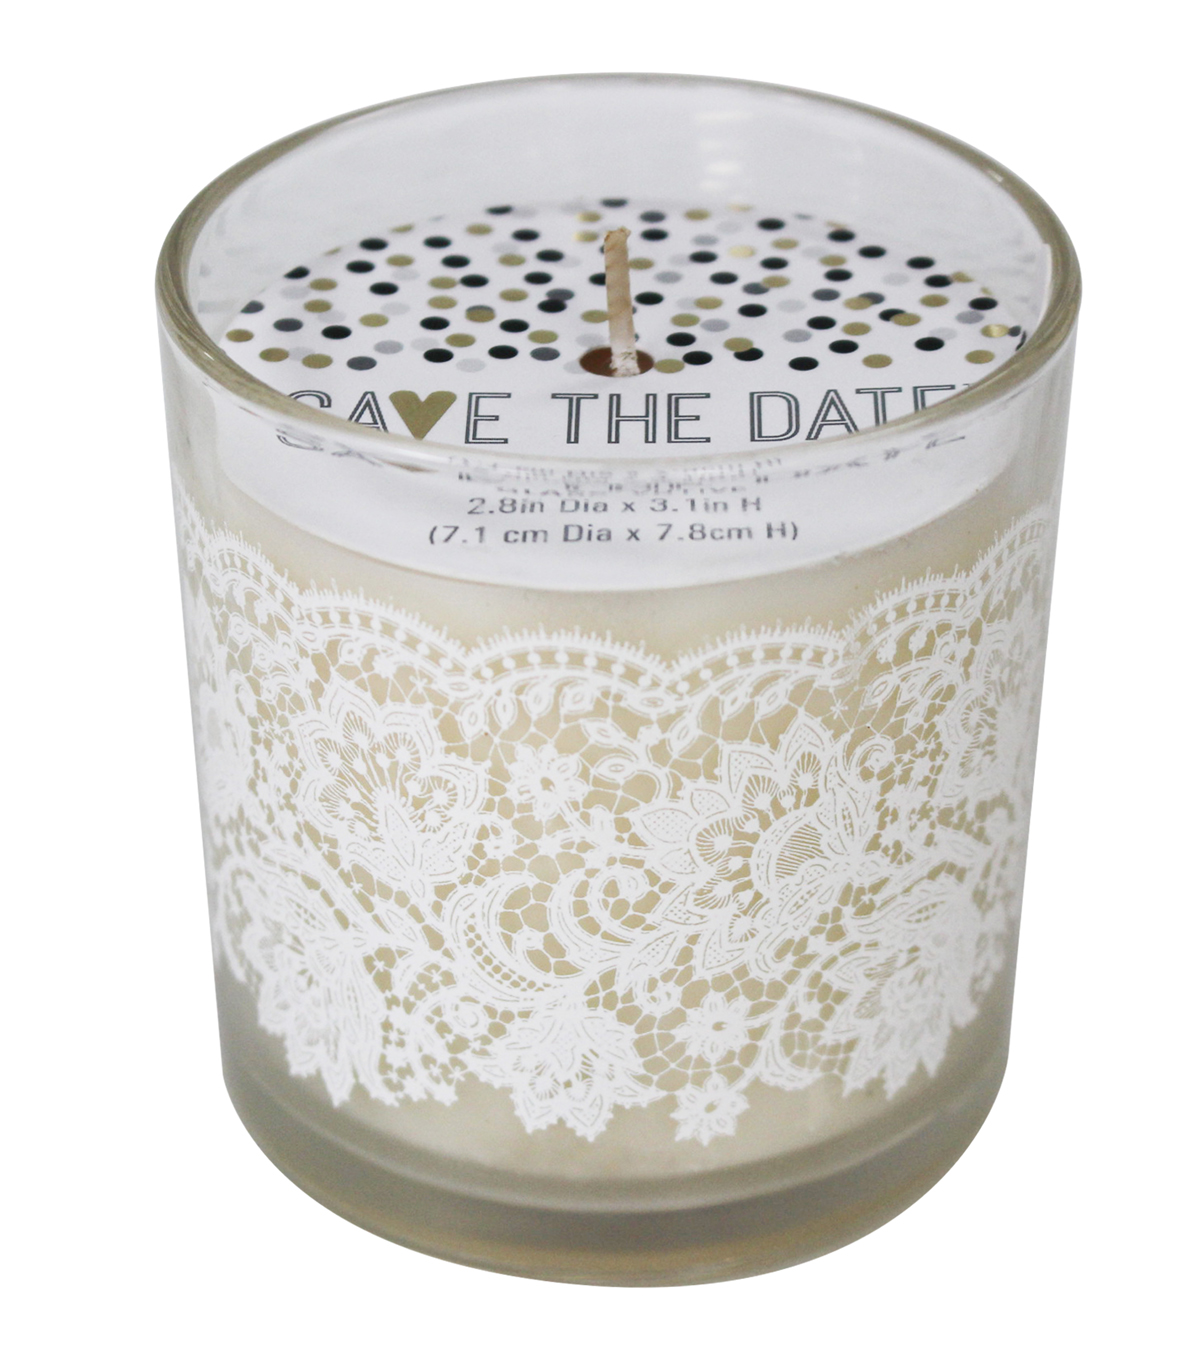 Save The Date™ Unscented Votive Candle with Lace-White